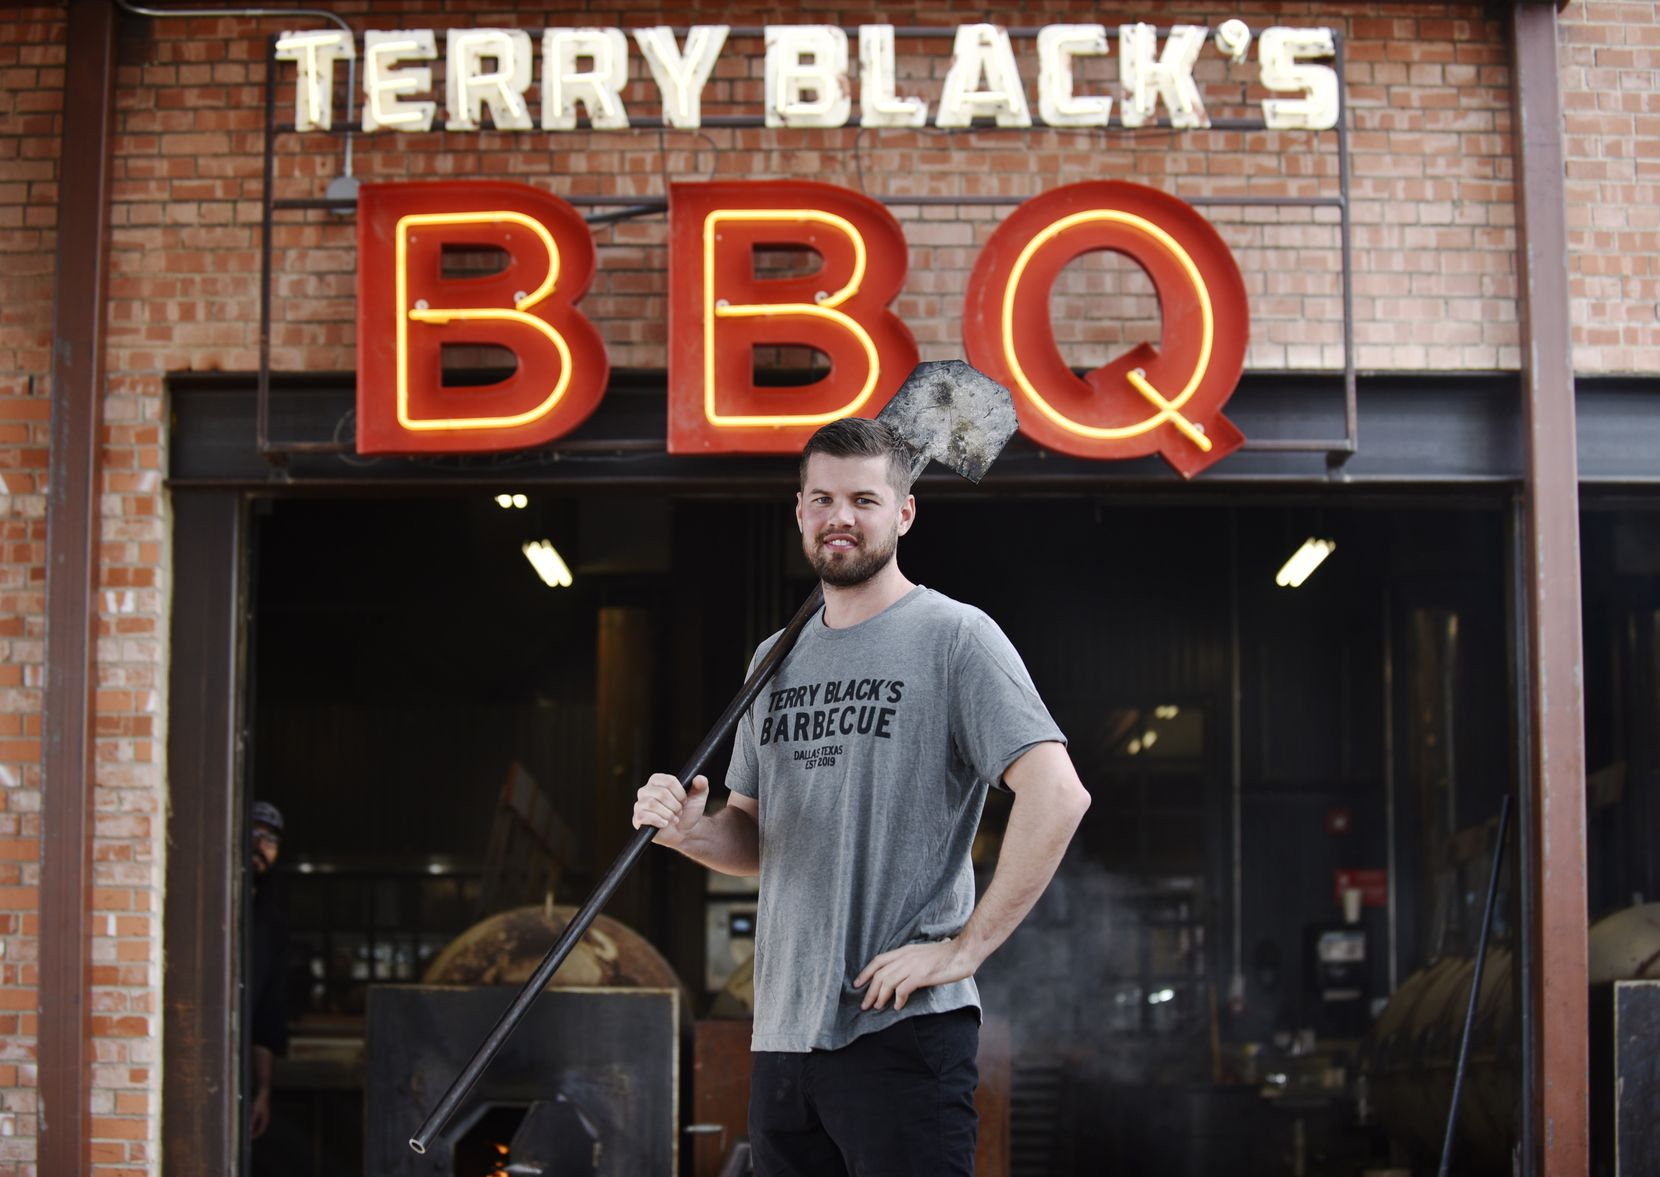 "Barbecue's popularity has skyrocketed over the past 5 to 10 years, says Mark Black, one of five co-owners of Terry Black's Barbecue. ""It's worldwide,"" he says. Even on a trip to Europe, people wanted to talk to him about Texas brisket."